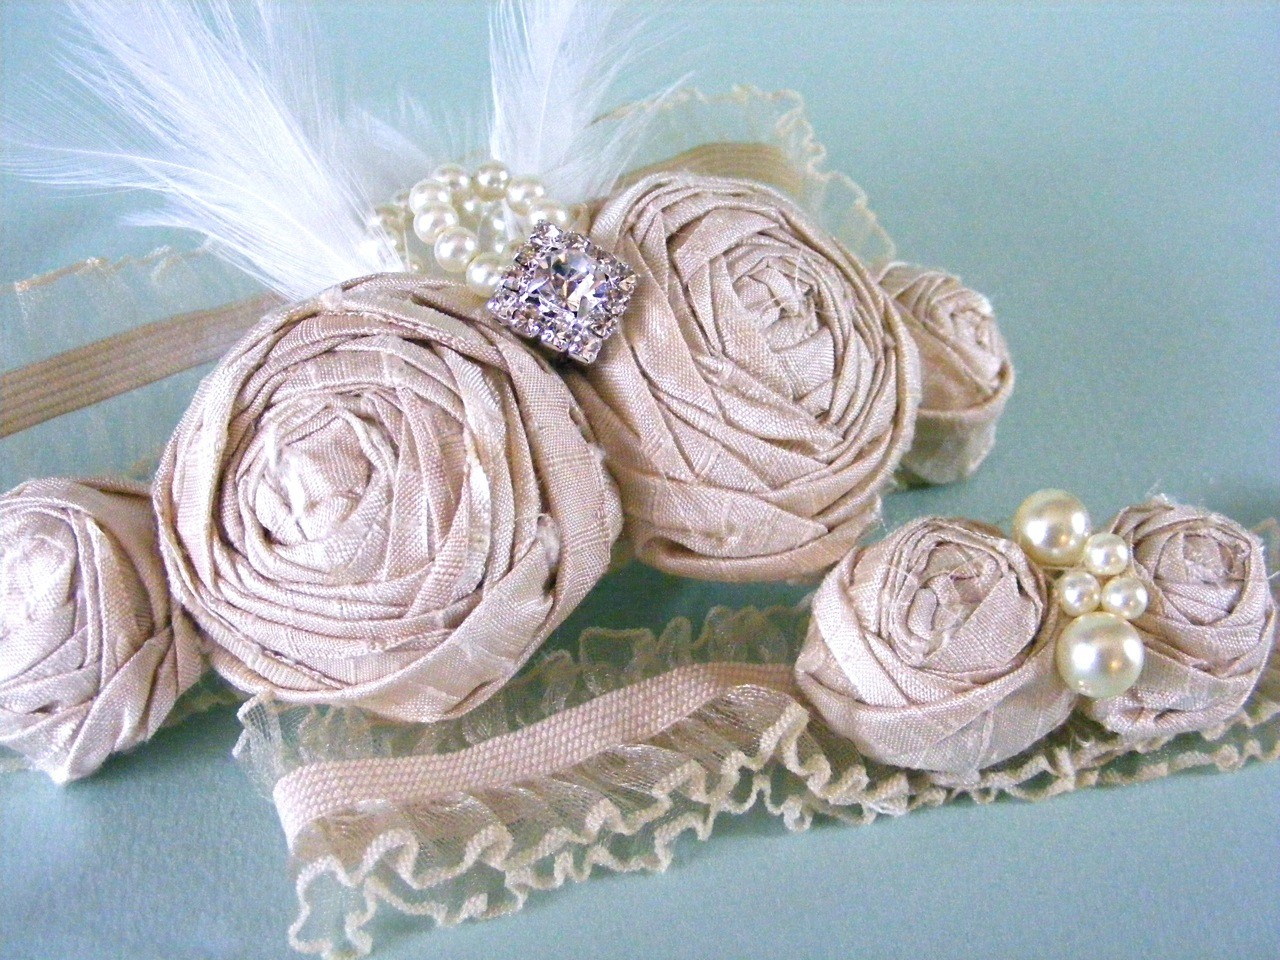 Bridal-garter-giveaway-elegant-rosettes-traditional-wedding-garter.original